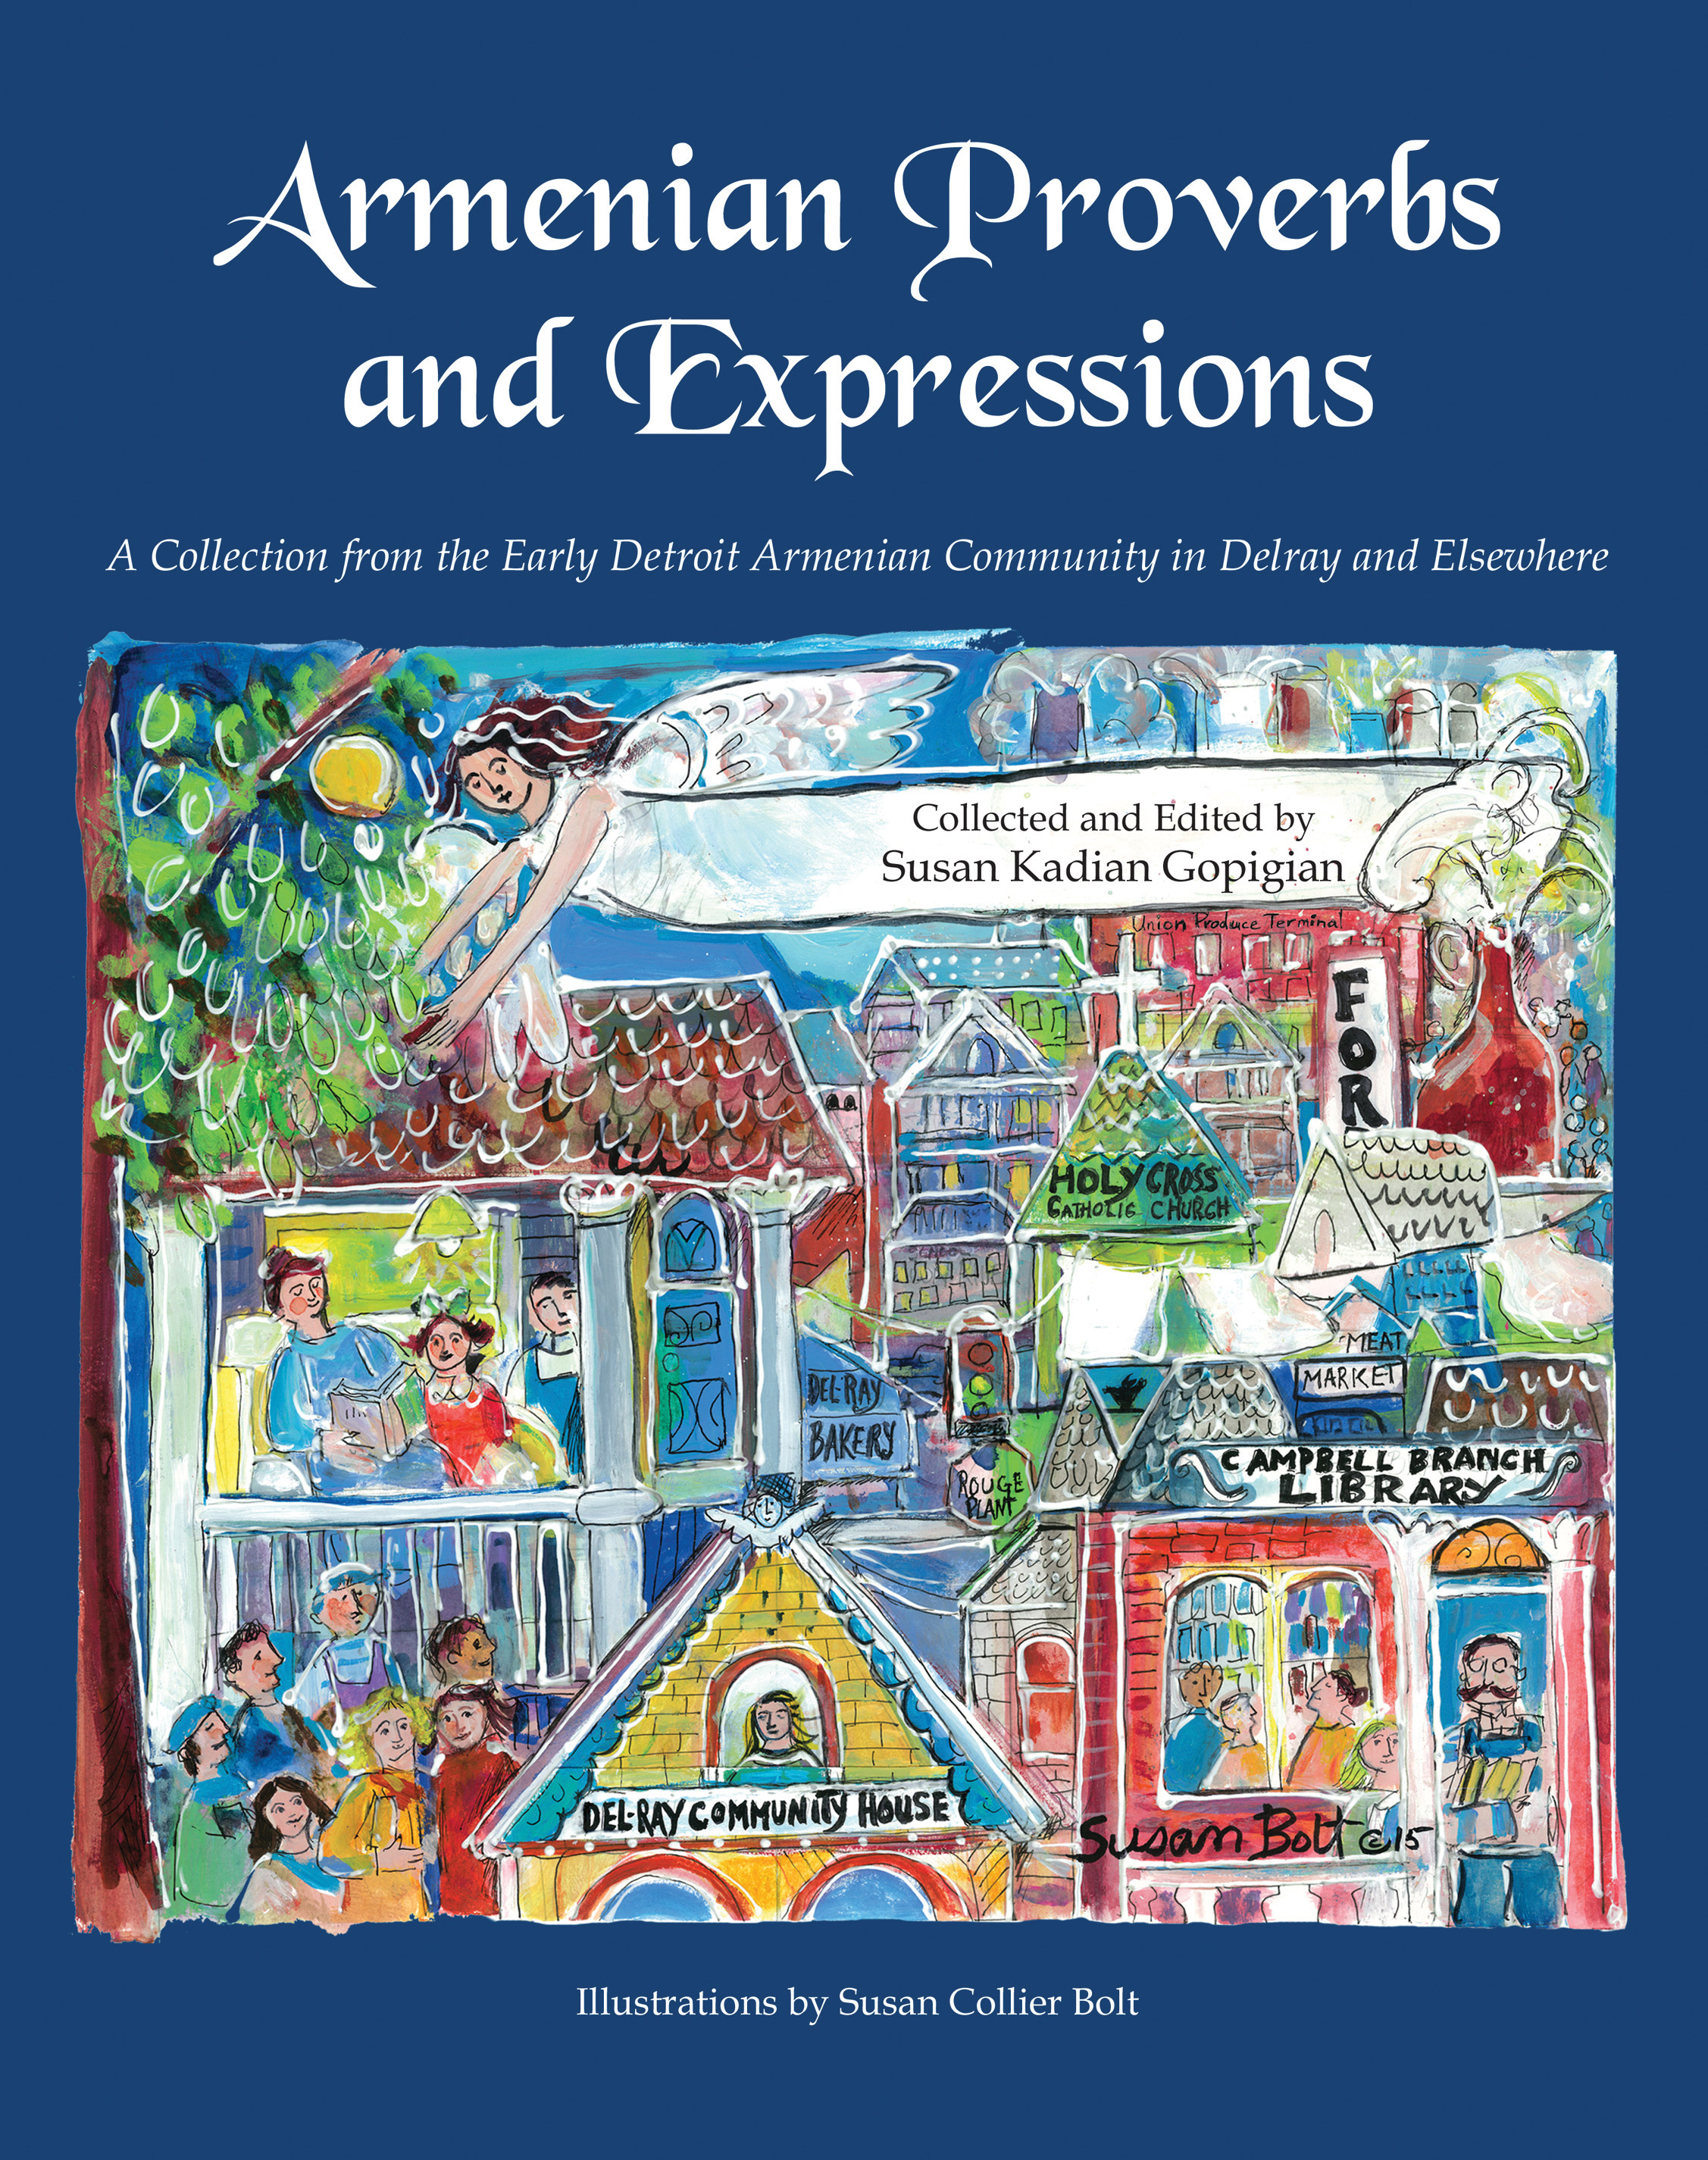 Armenian Proverbs and Expressions cover